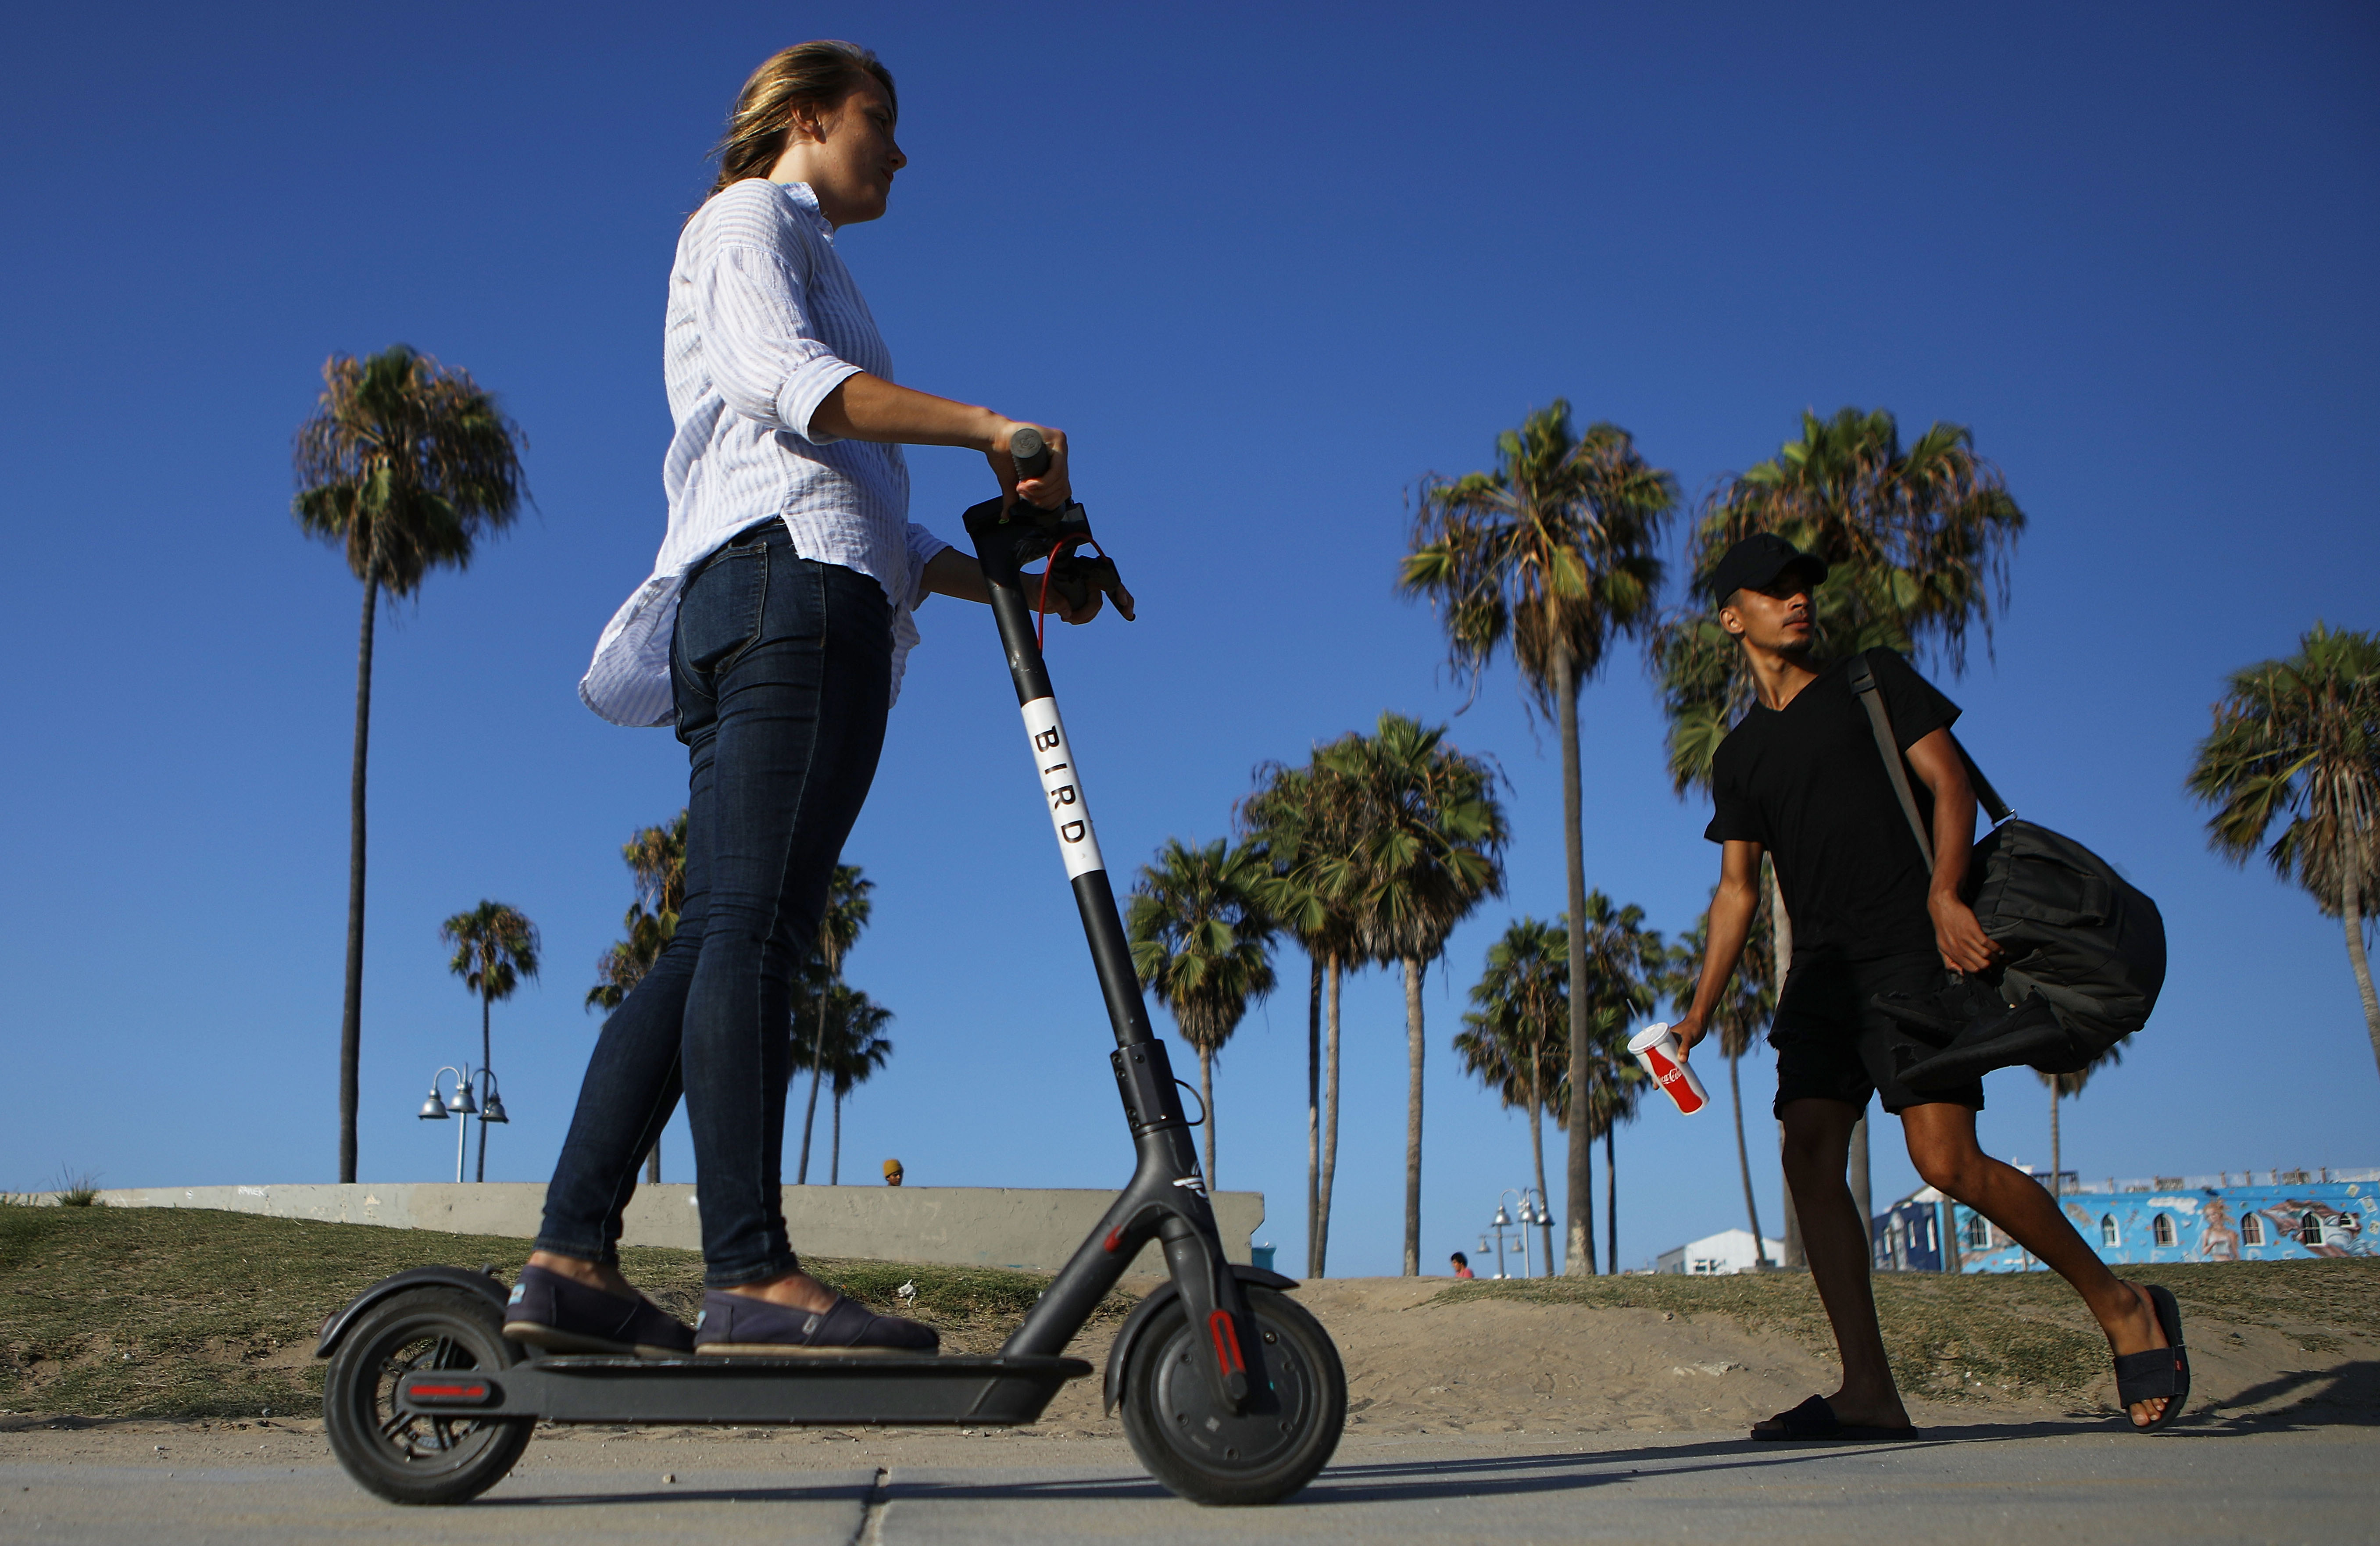 The electric scooter craze is officially one year old — what s next